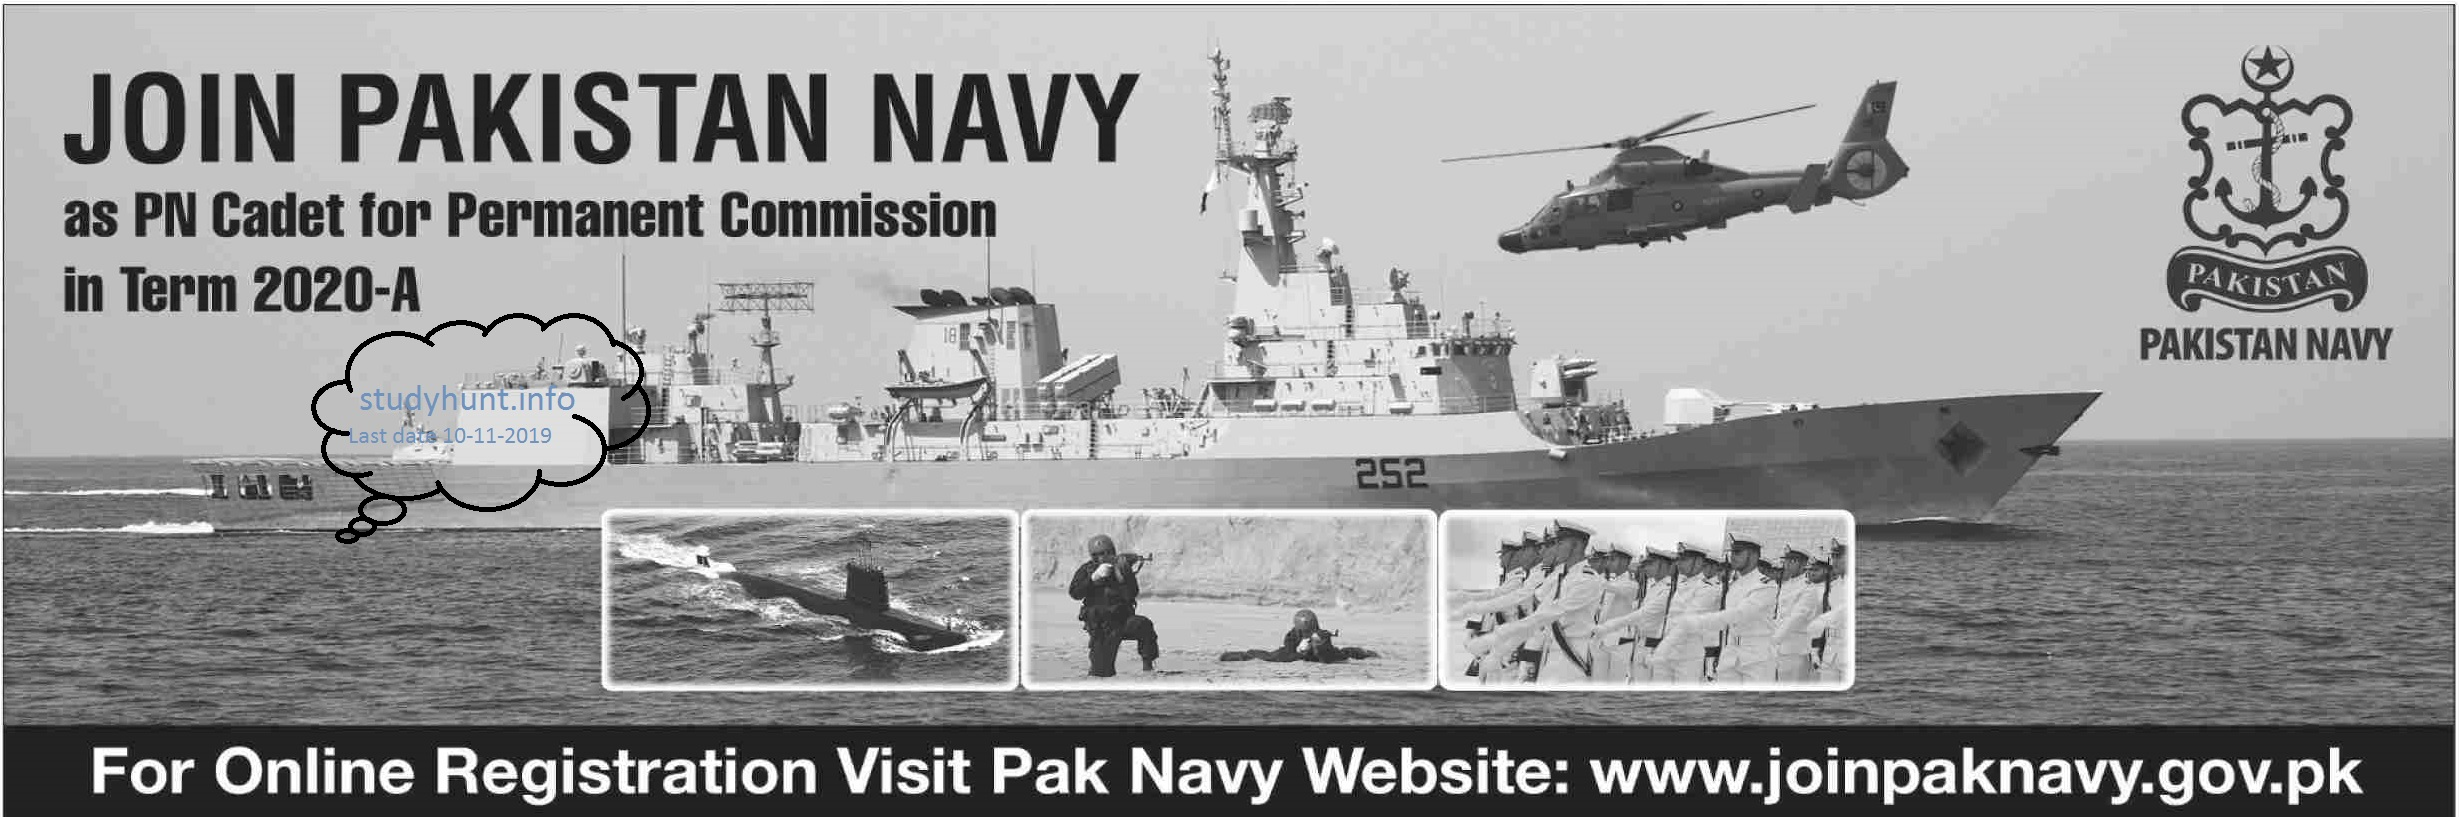 Jobs in Pak Navy as PN Cadet For Permanent Commission 2020